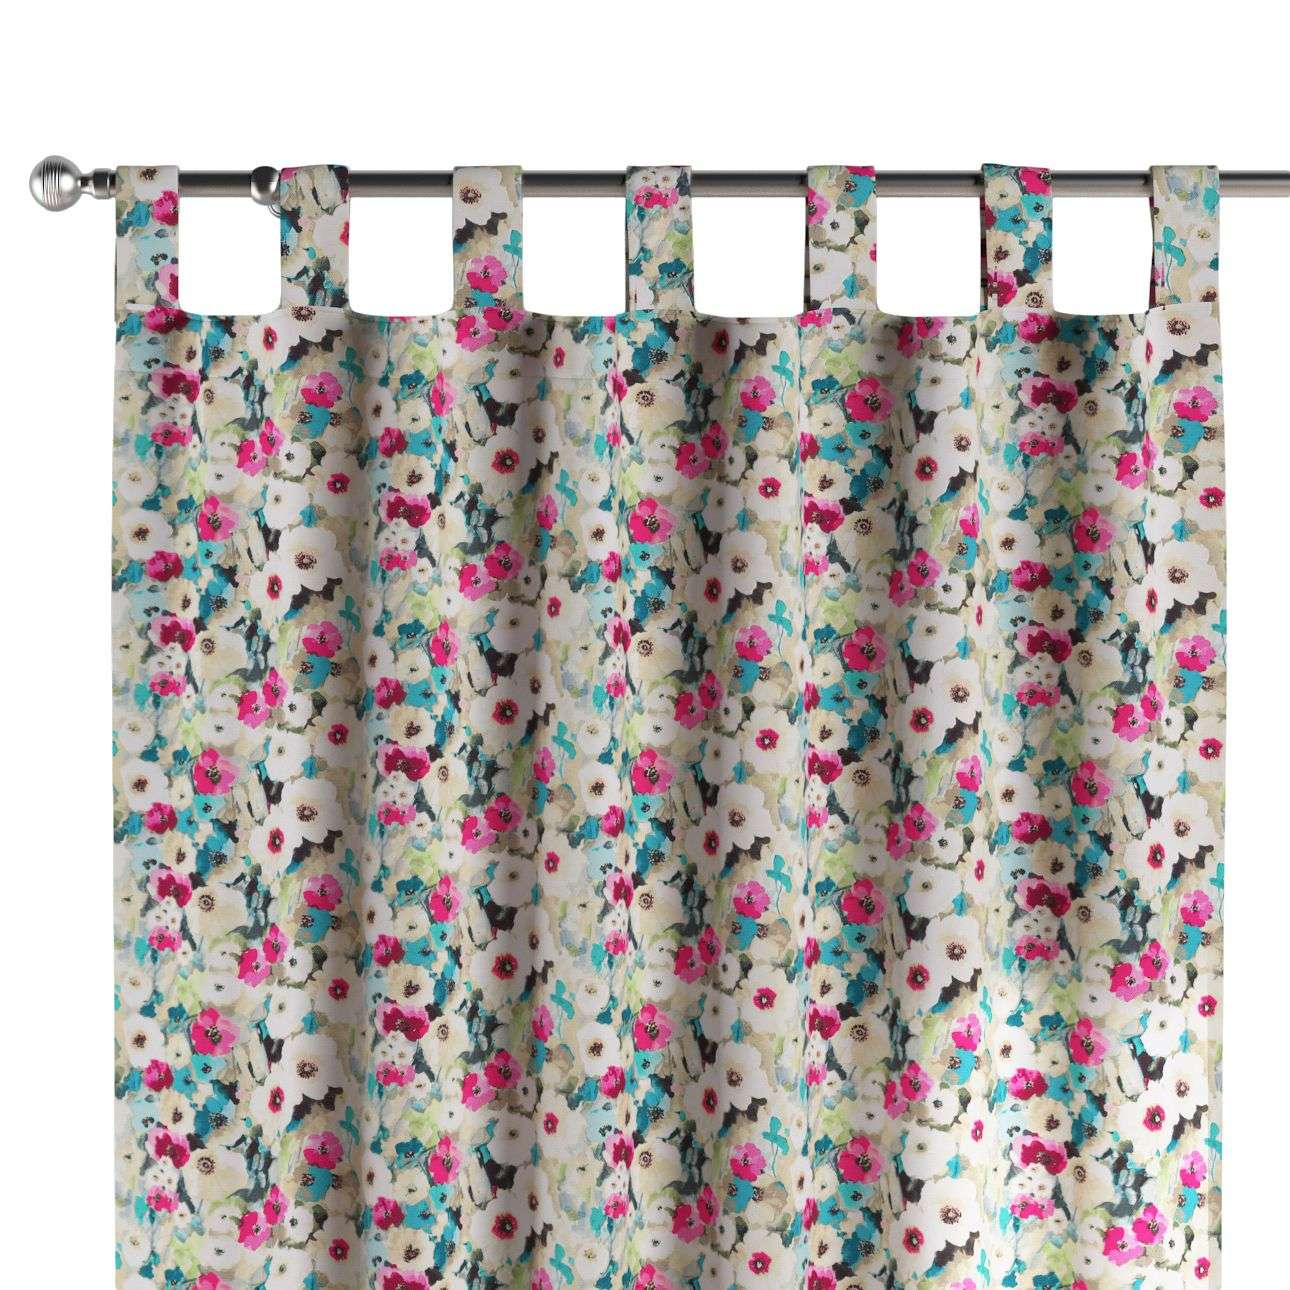 Tab top curtains in collection Monet, fabric: 140-10